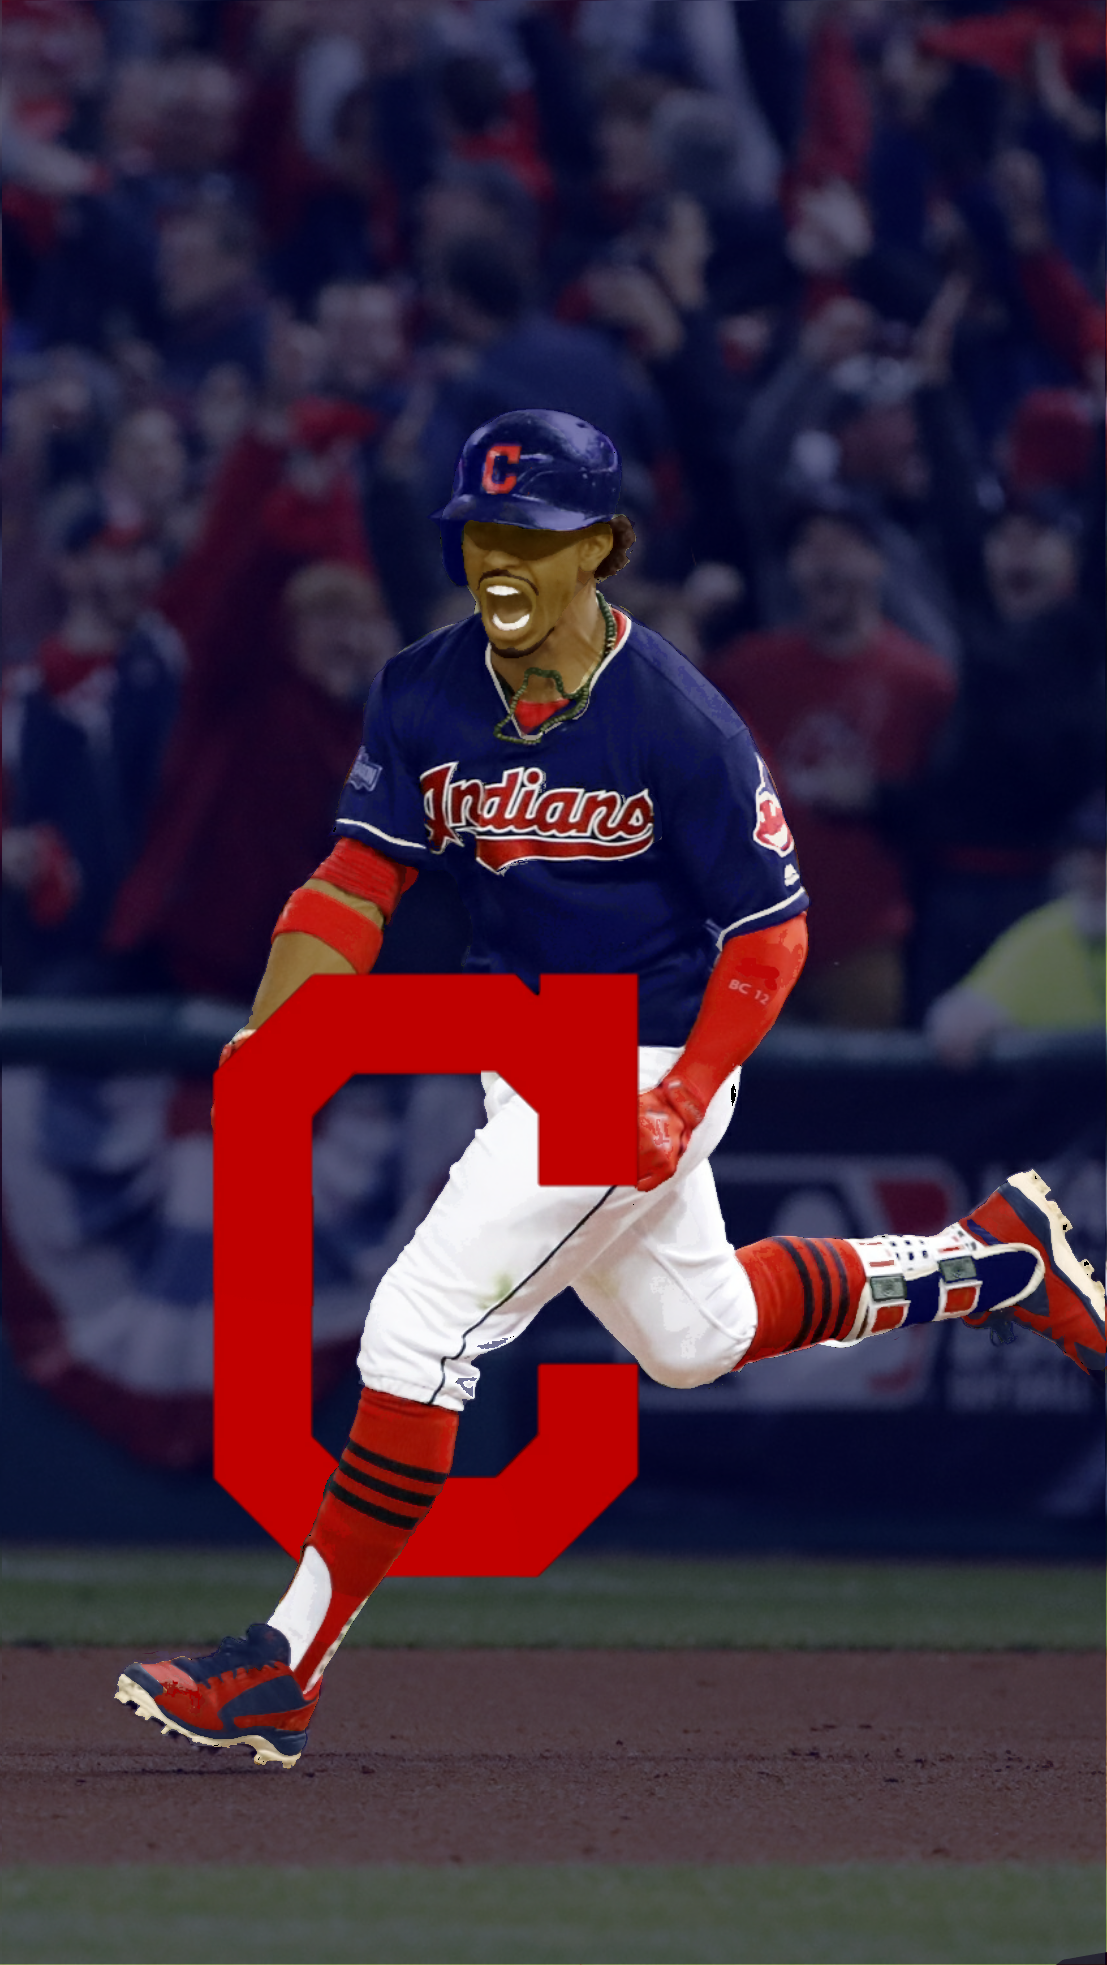 1107x1965 - Cleveland Indians Wallpapers 1